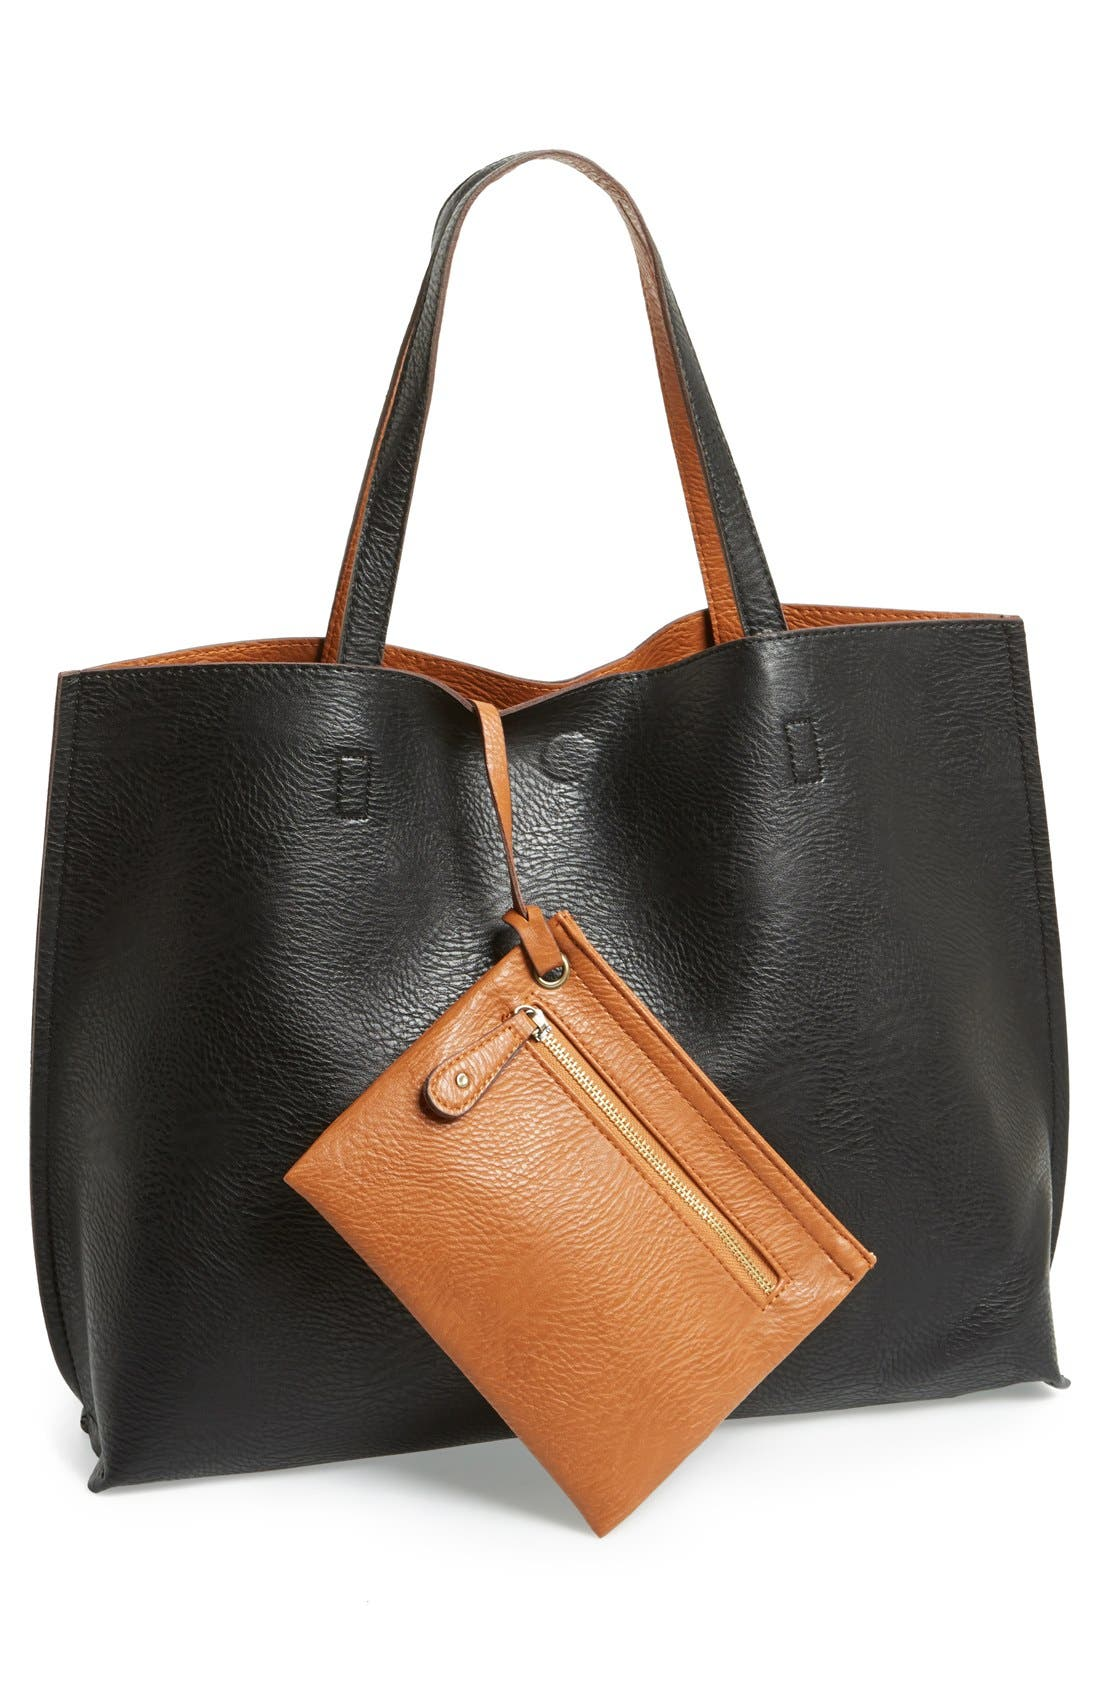 Reversible Faux Leather Tote & Wristlet,                             Main thumbnail 1, color,                             BLACK/ COGNAC